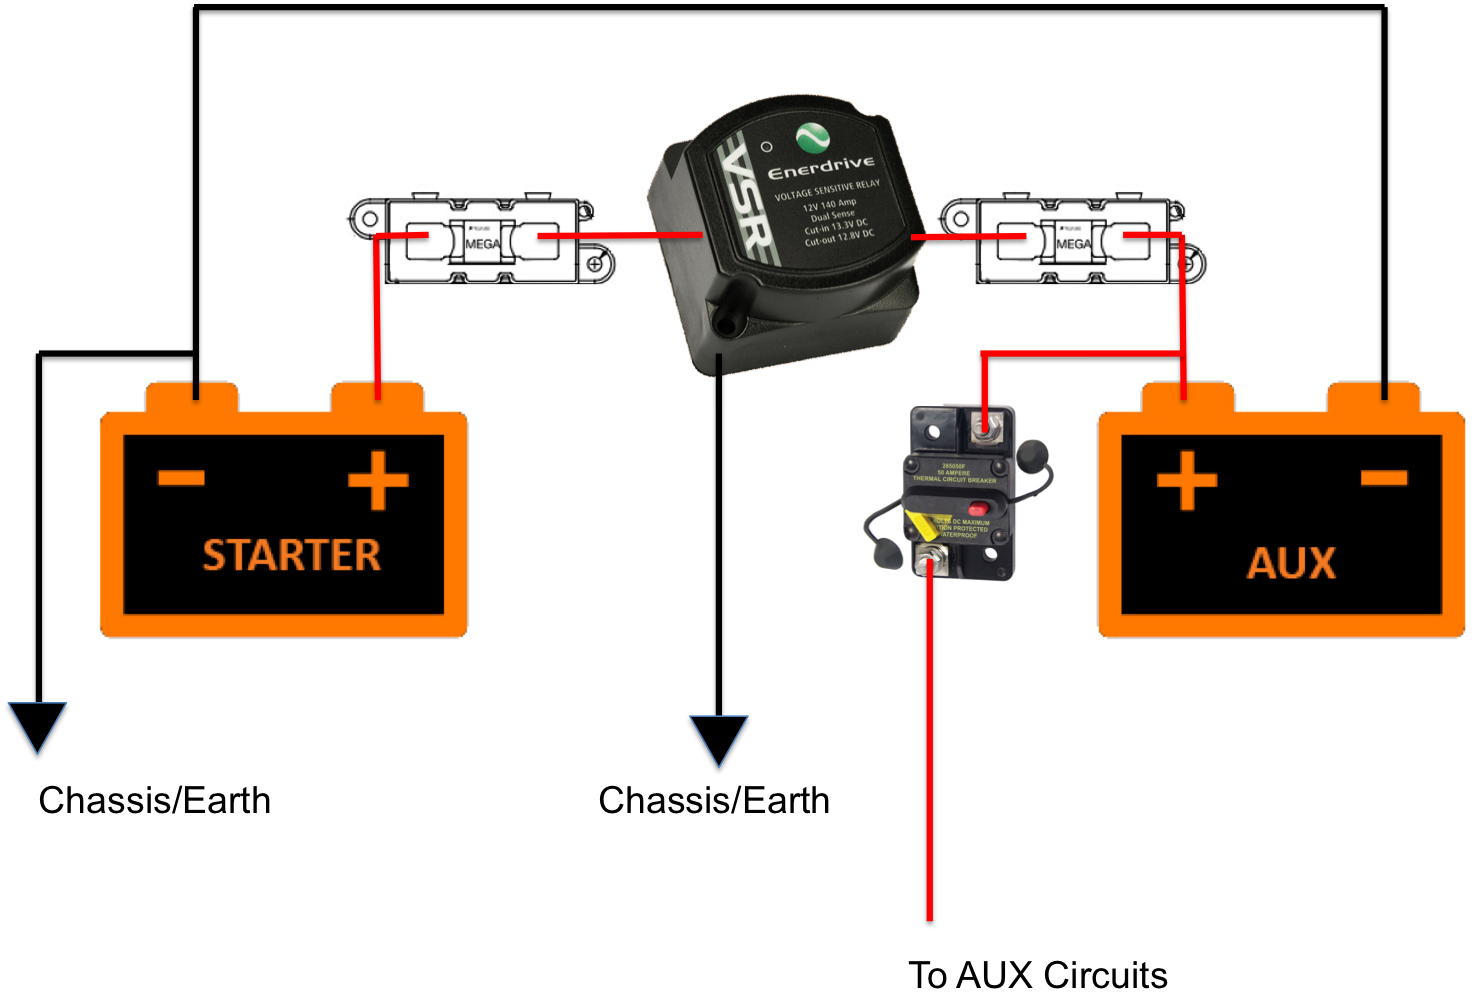 3 Pin Potentiometer Circuit Diagram additionally Add Light Switch together with Lighting add extra light from switch moreover Mga Wiring Diagram furthermore House Wiring One Light Two Switches. on light switch wiring diagram